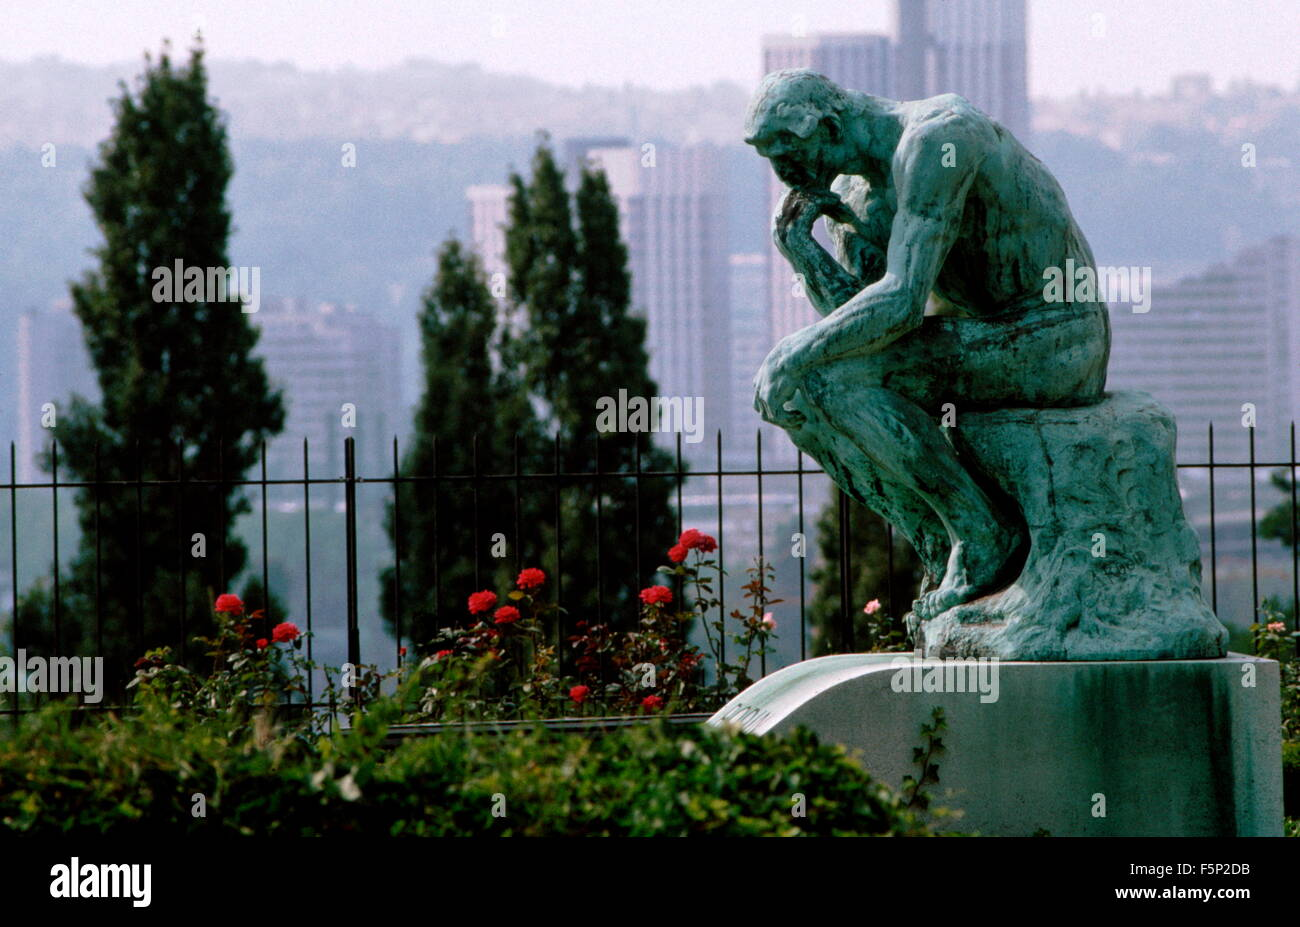 AJAXNETPHOTO. MEUDON, FRANCE. - THE THINKER - BRONZE STATUE BY FRENCH ARTIST AUGUST RODIN (1840-1917) AT THE VILLA - Stock Image